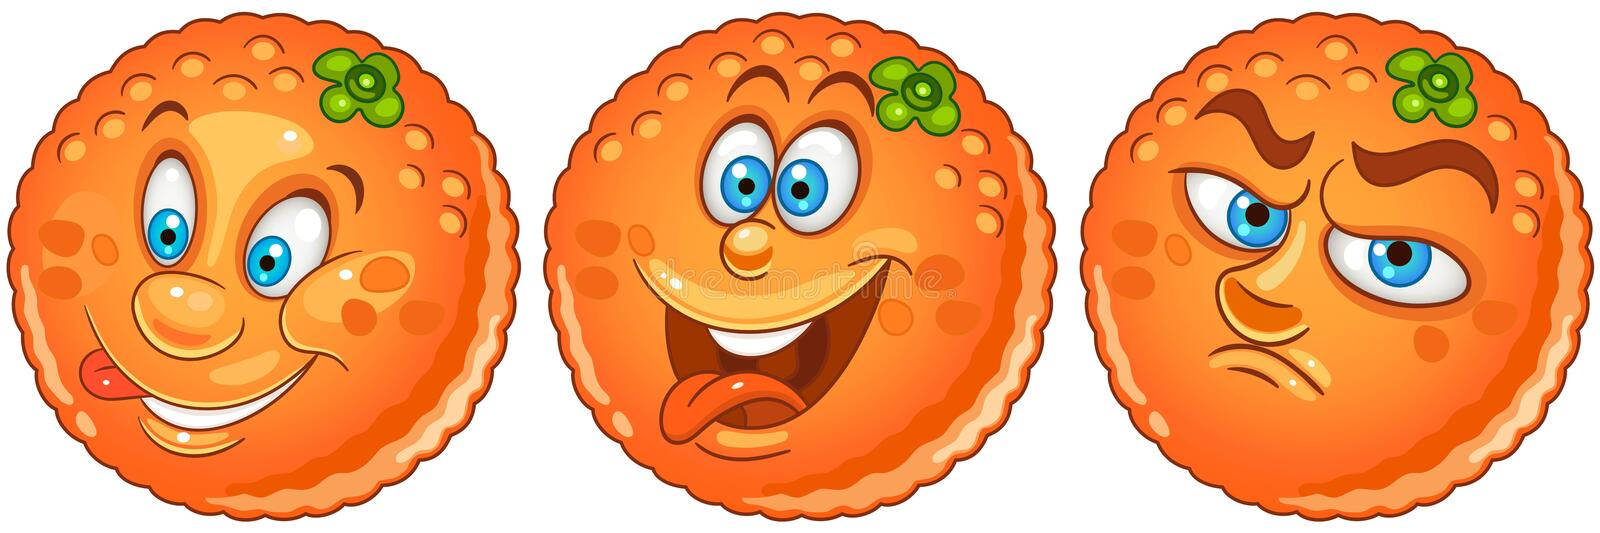 Orange. Fruit Food concept royalty free stock images